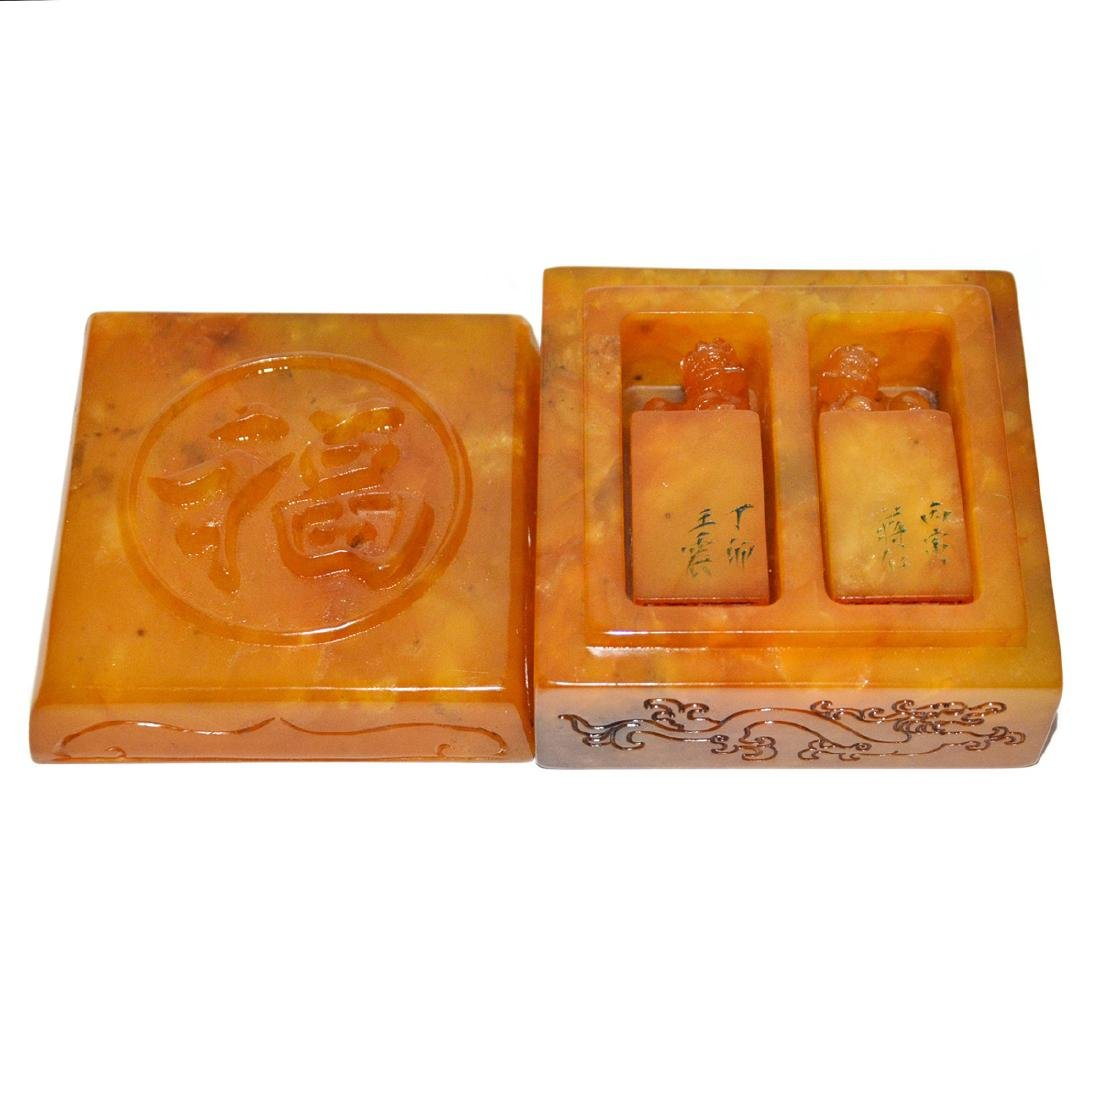 A Pair of Yellow Furong Stone Seals with 'Fu ' Box and - 9